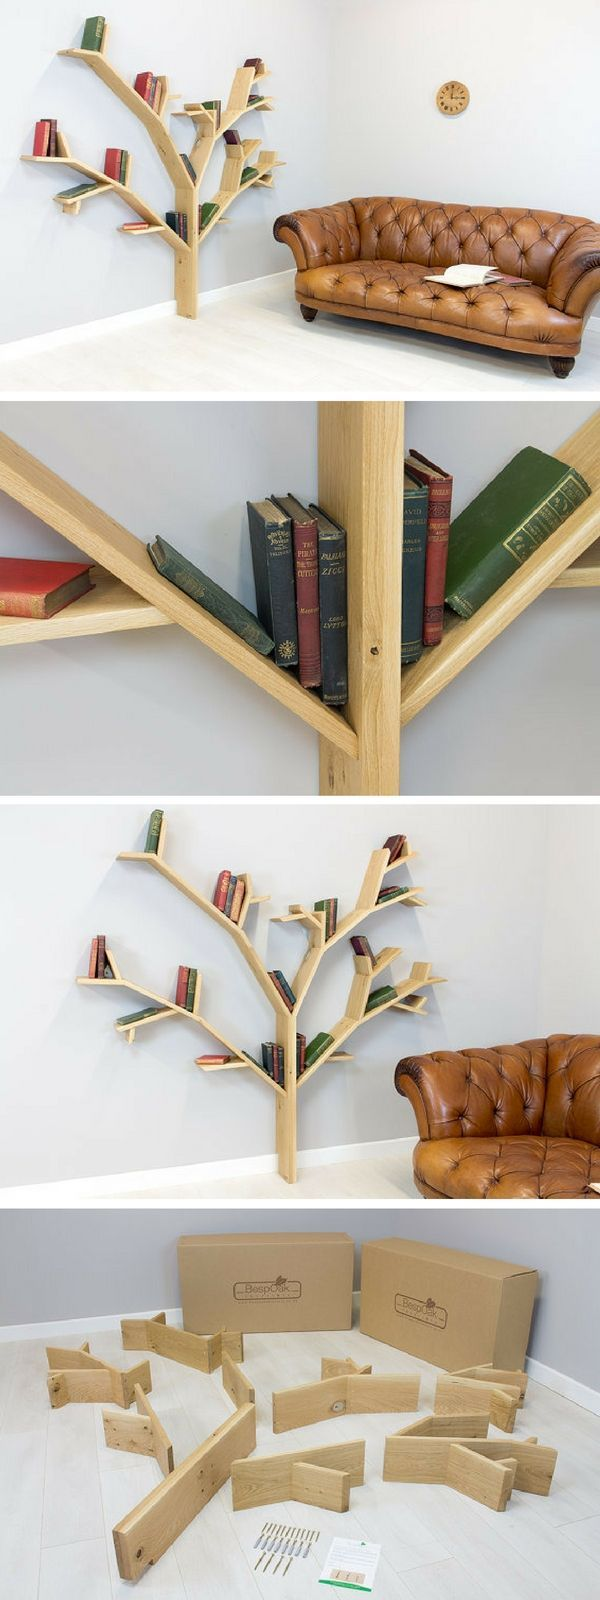 best  tree bookshelf ideas on pinterest  tree shelf girls  - check out the hazel tree bookshelf istandarddesign